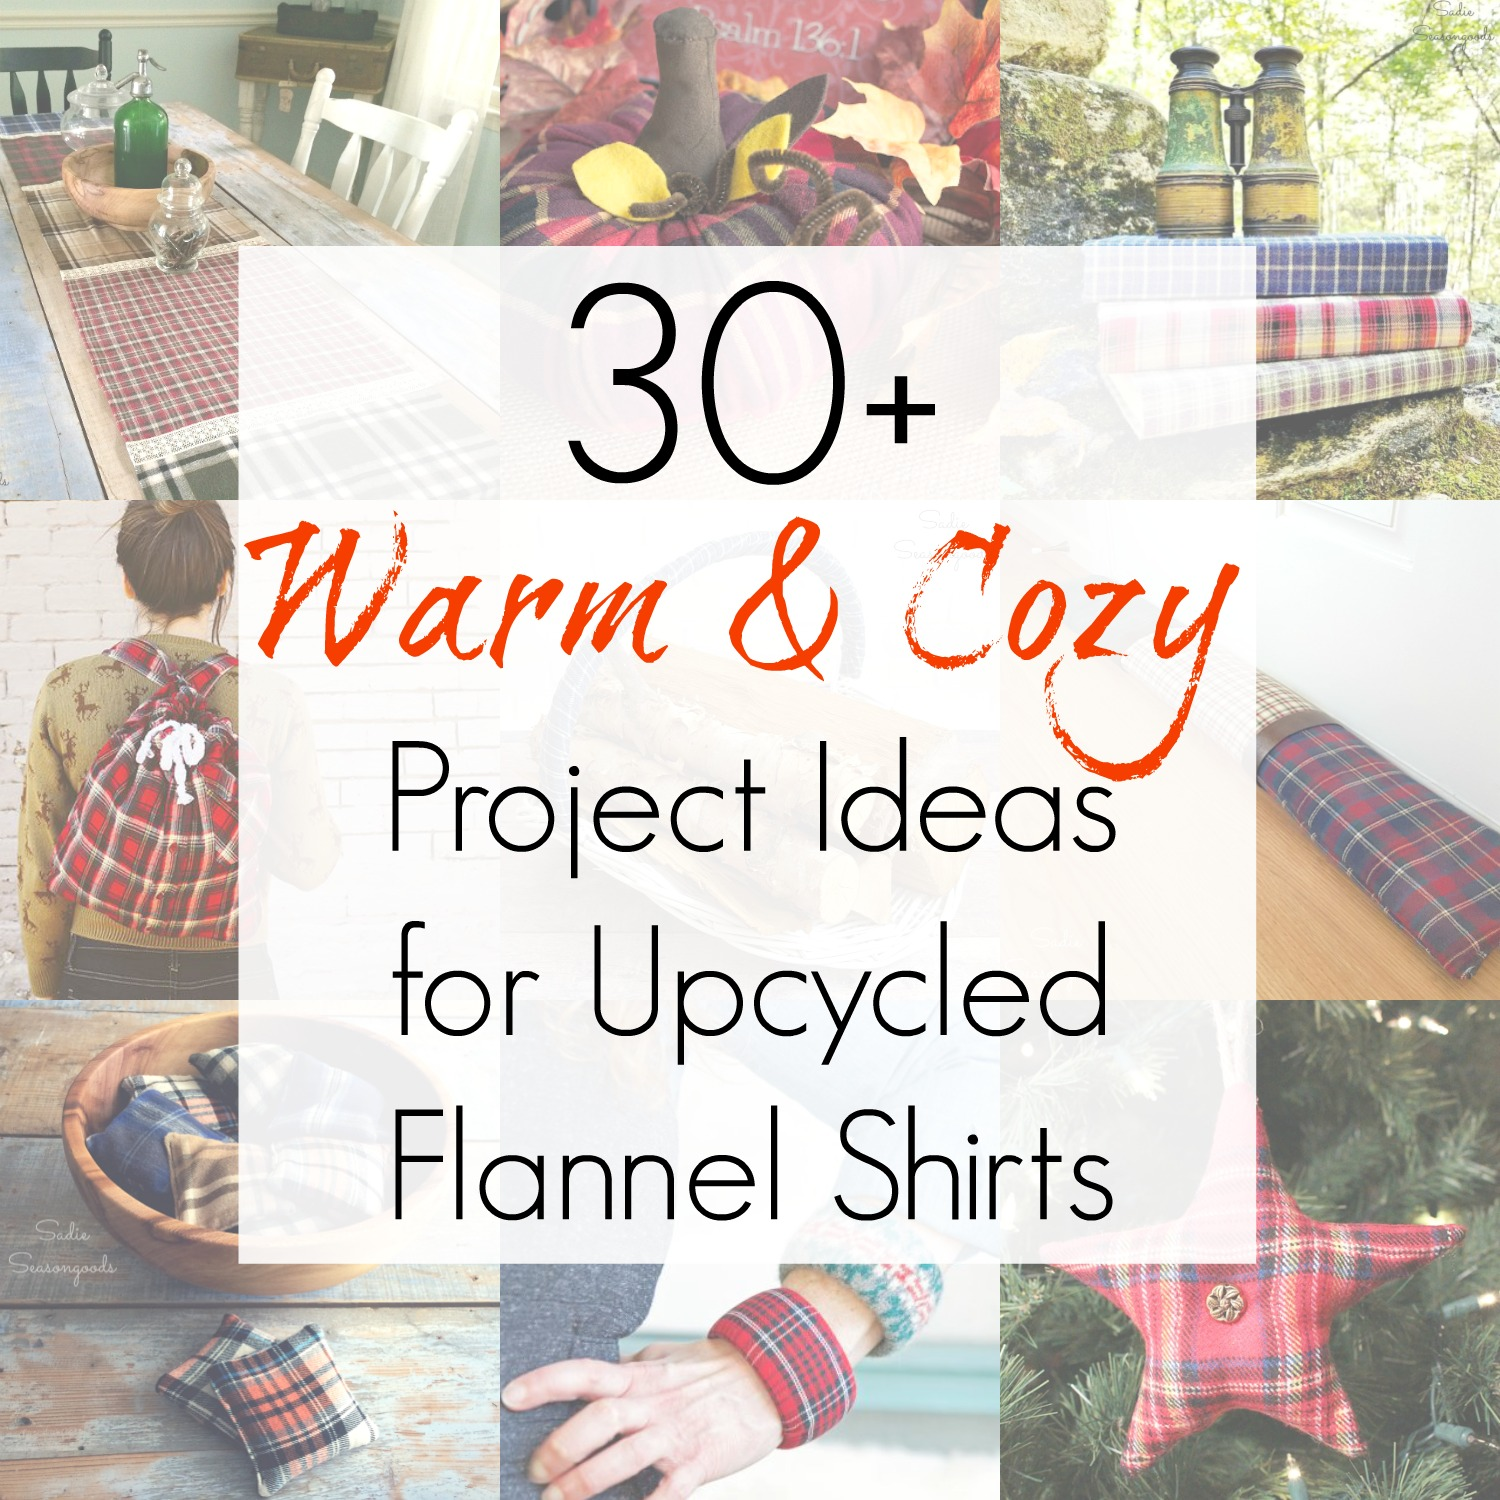 Upcycling ideas and upcycling clothes that use flannel fabric or mens flannel shirts for sewing projects and crafts